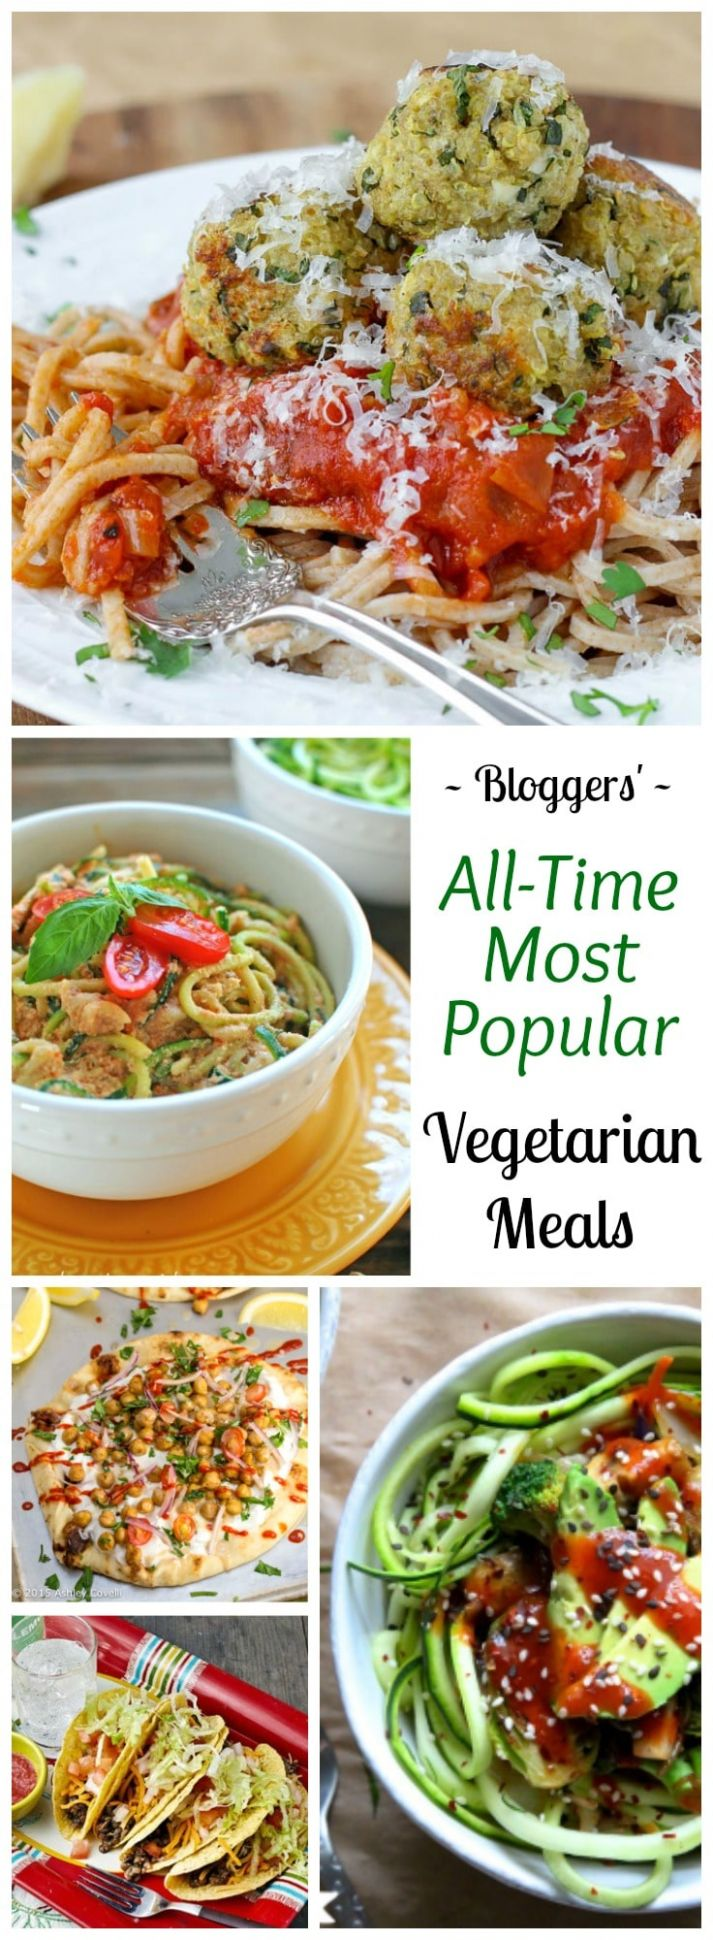 11 All-Time Best Healthy Vegetarian Meals - Two Healthy Kitchens - Healthy Recipes Vegan